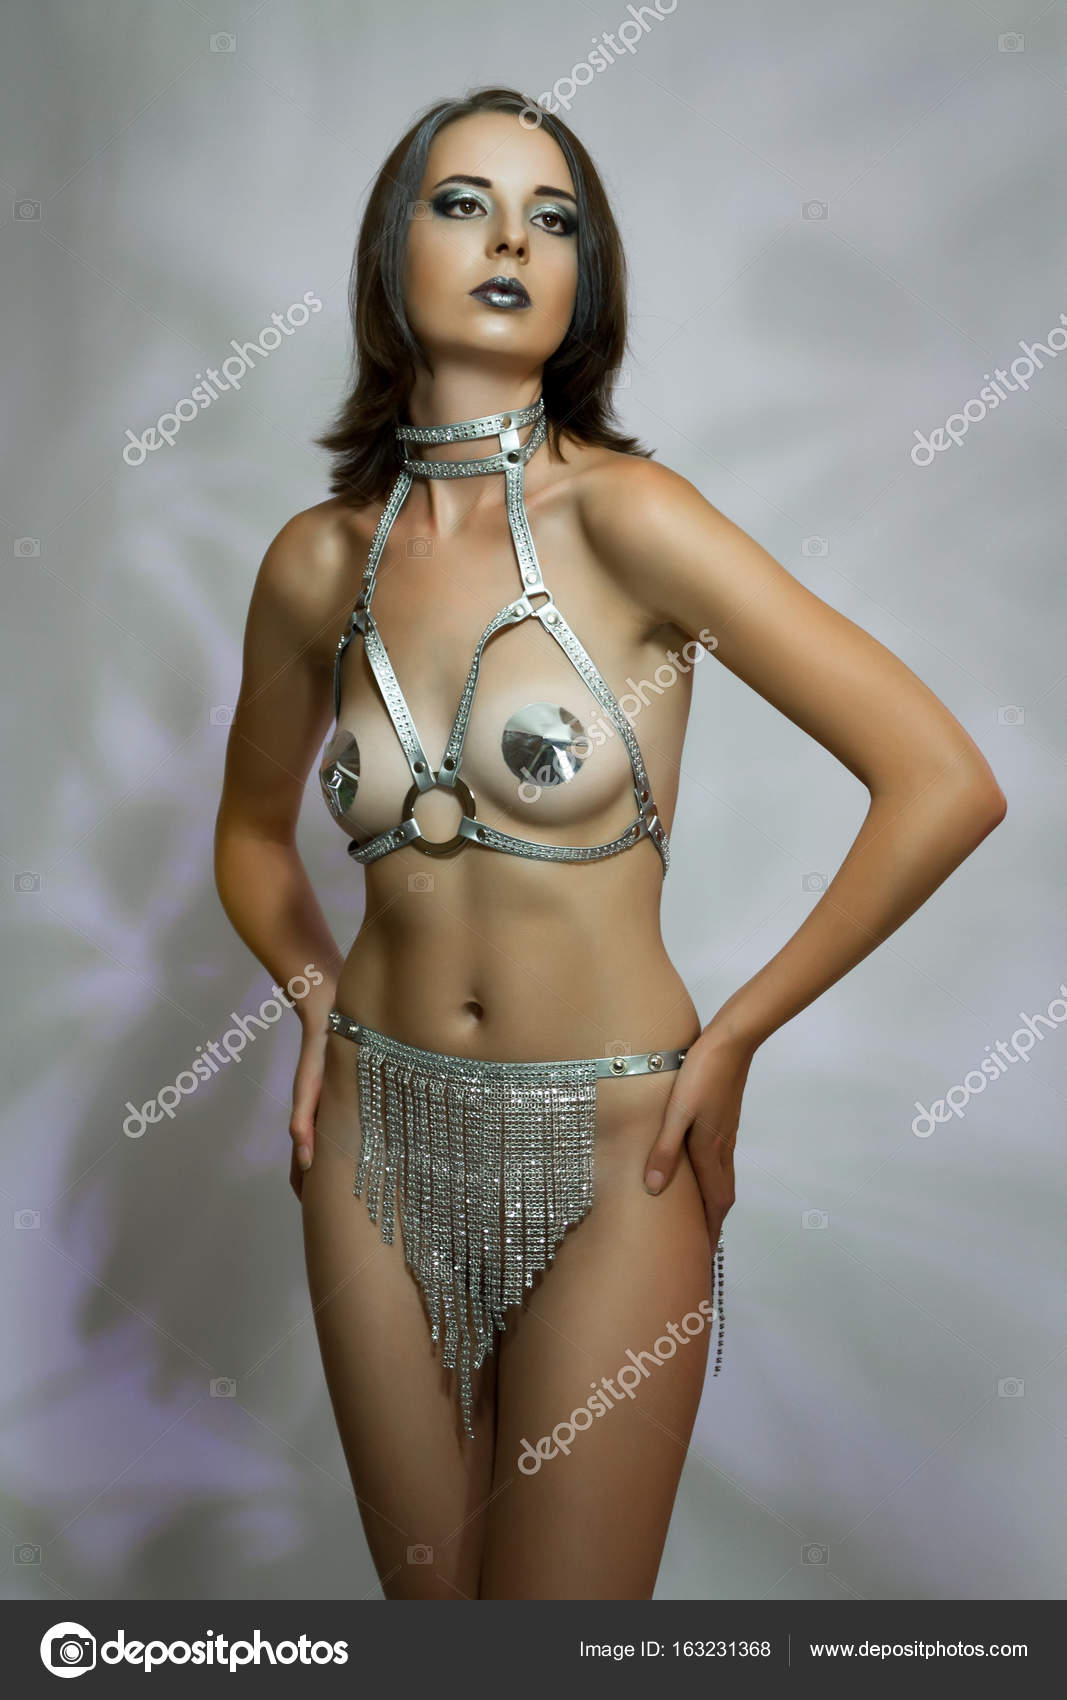 A Charming Sexy Girl With Loose Hair With Body Art In The